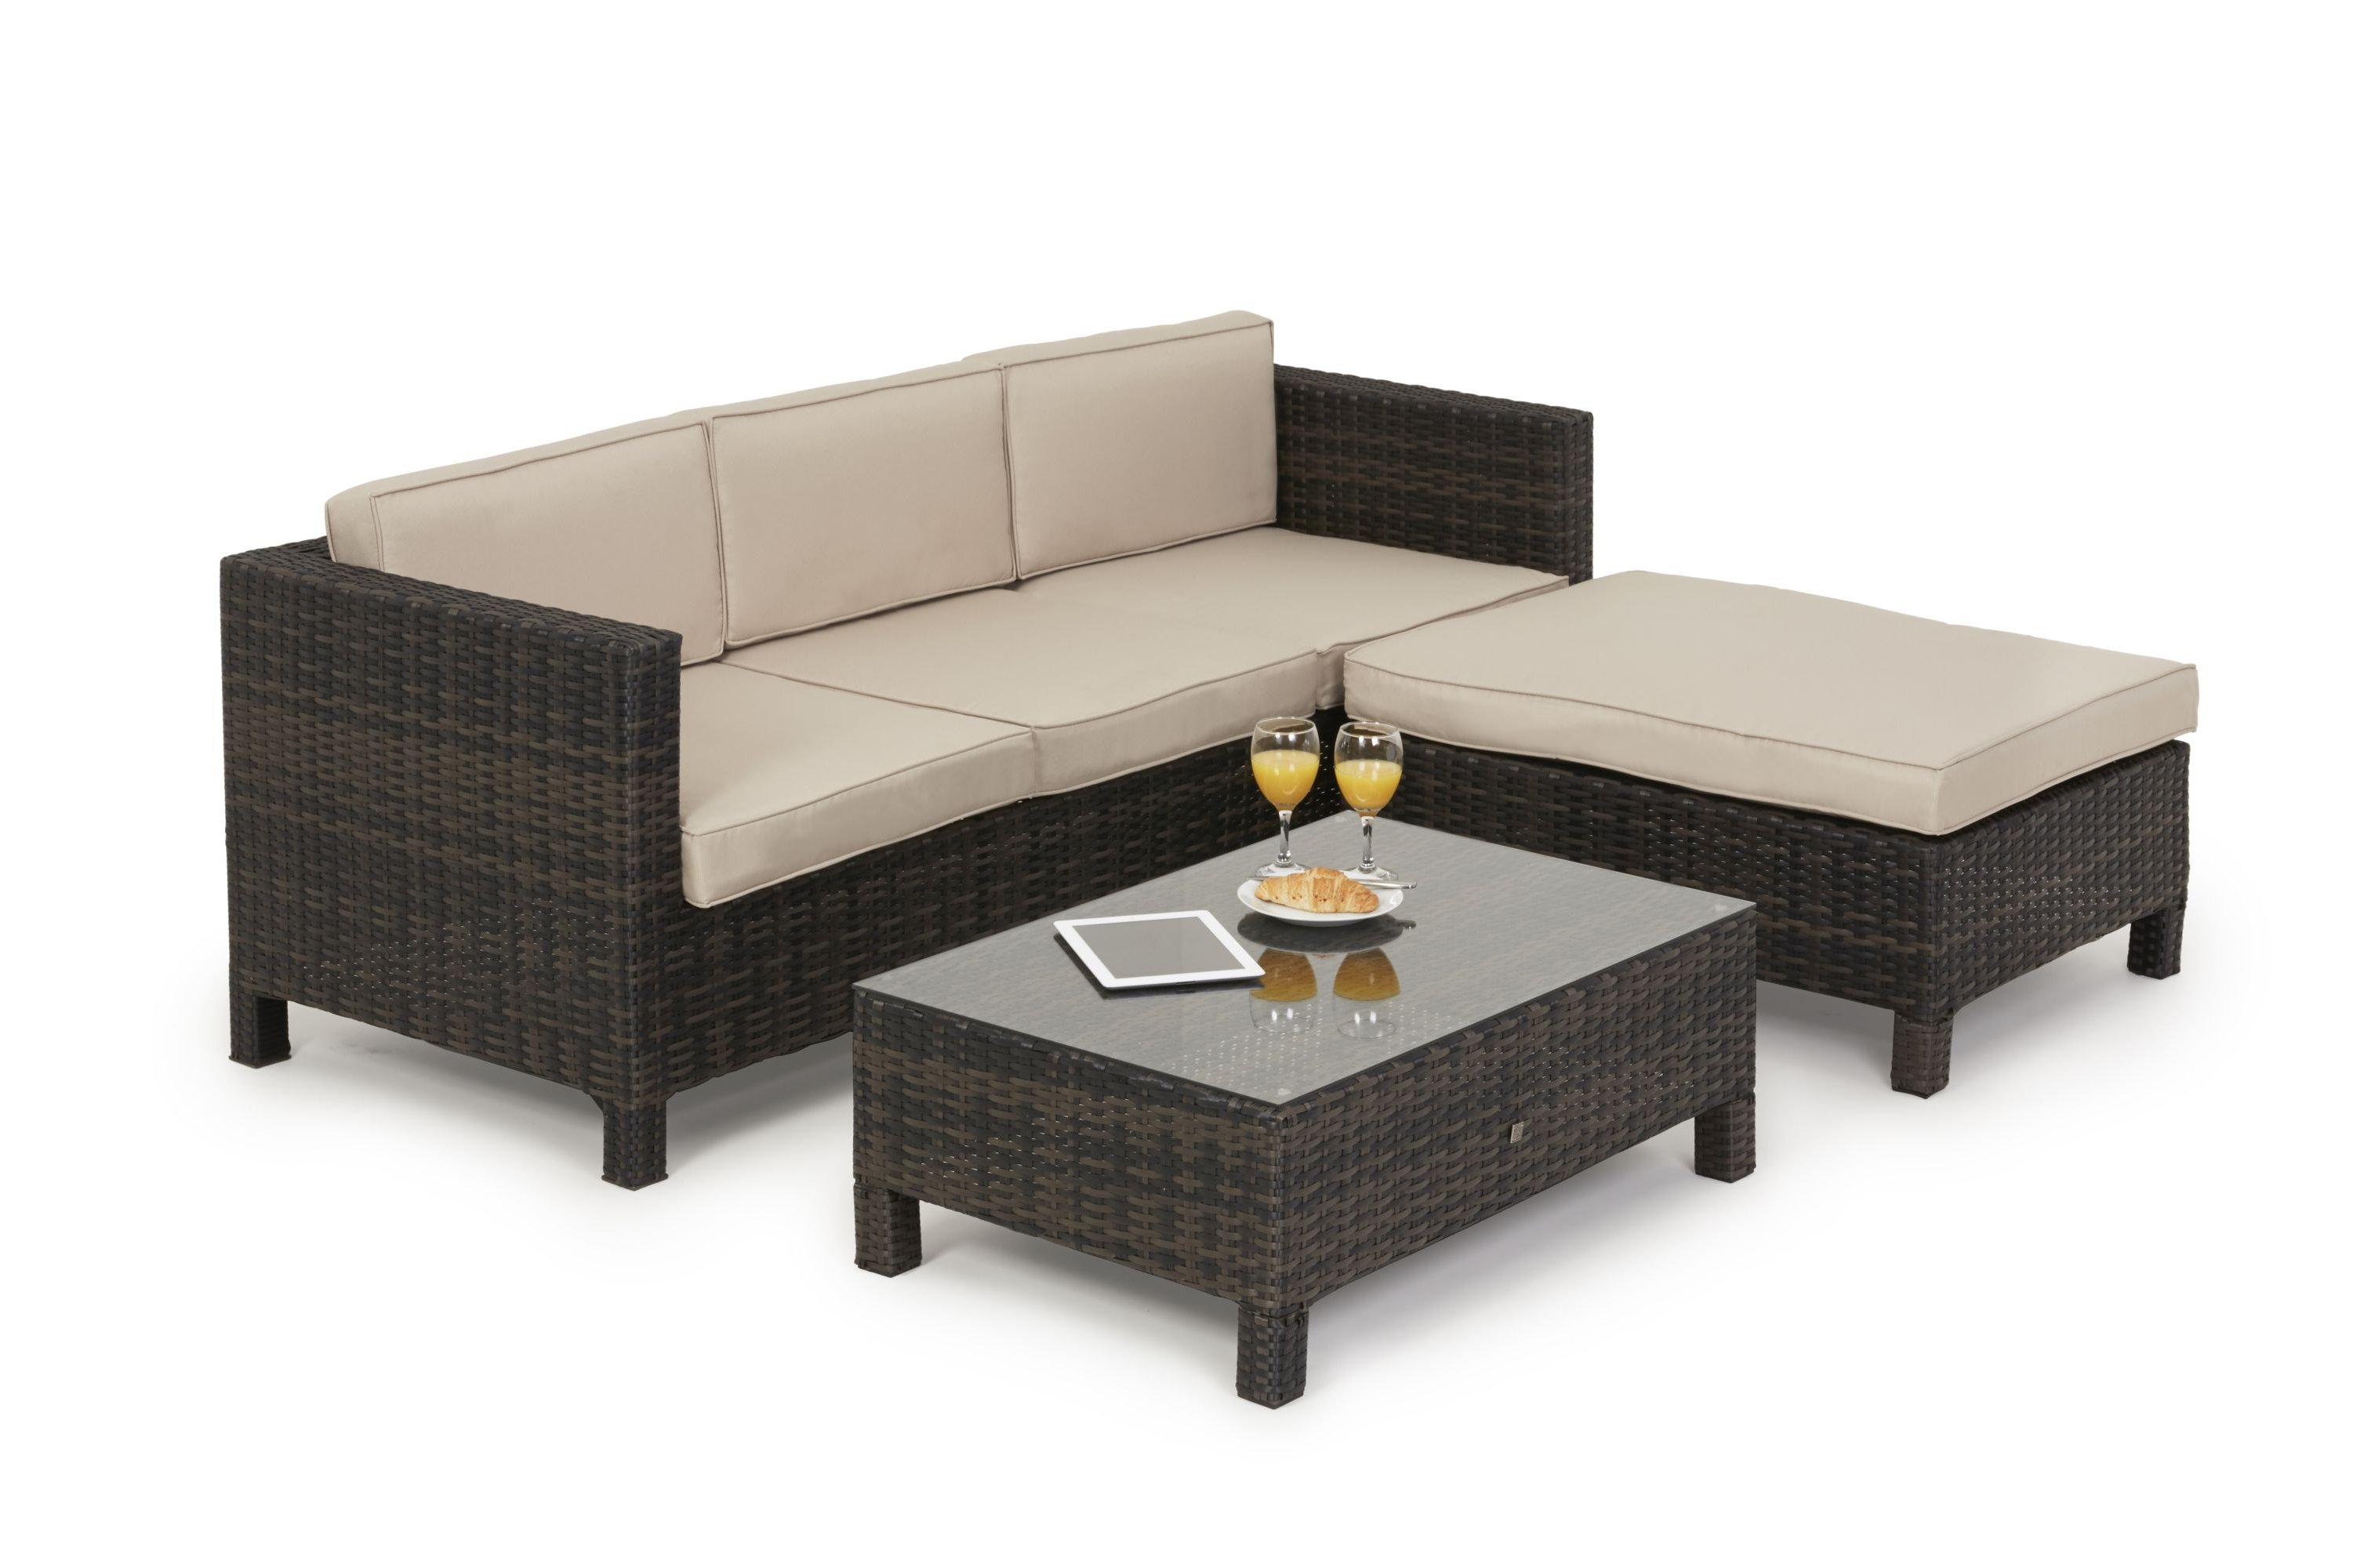 Maze Rattan LA Corner Sofa with Table in Brown and Beige